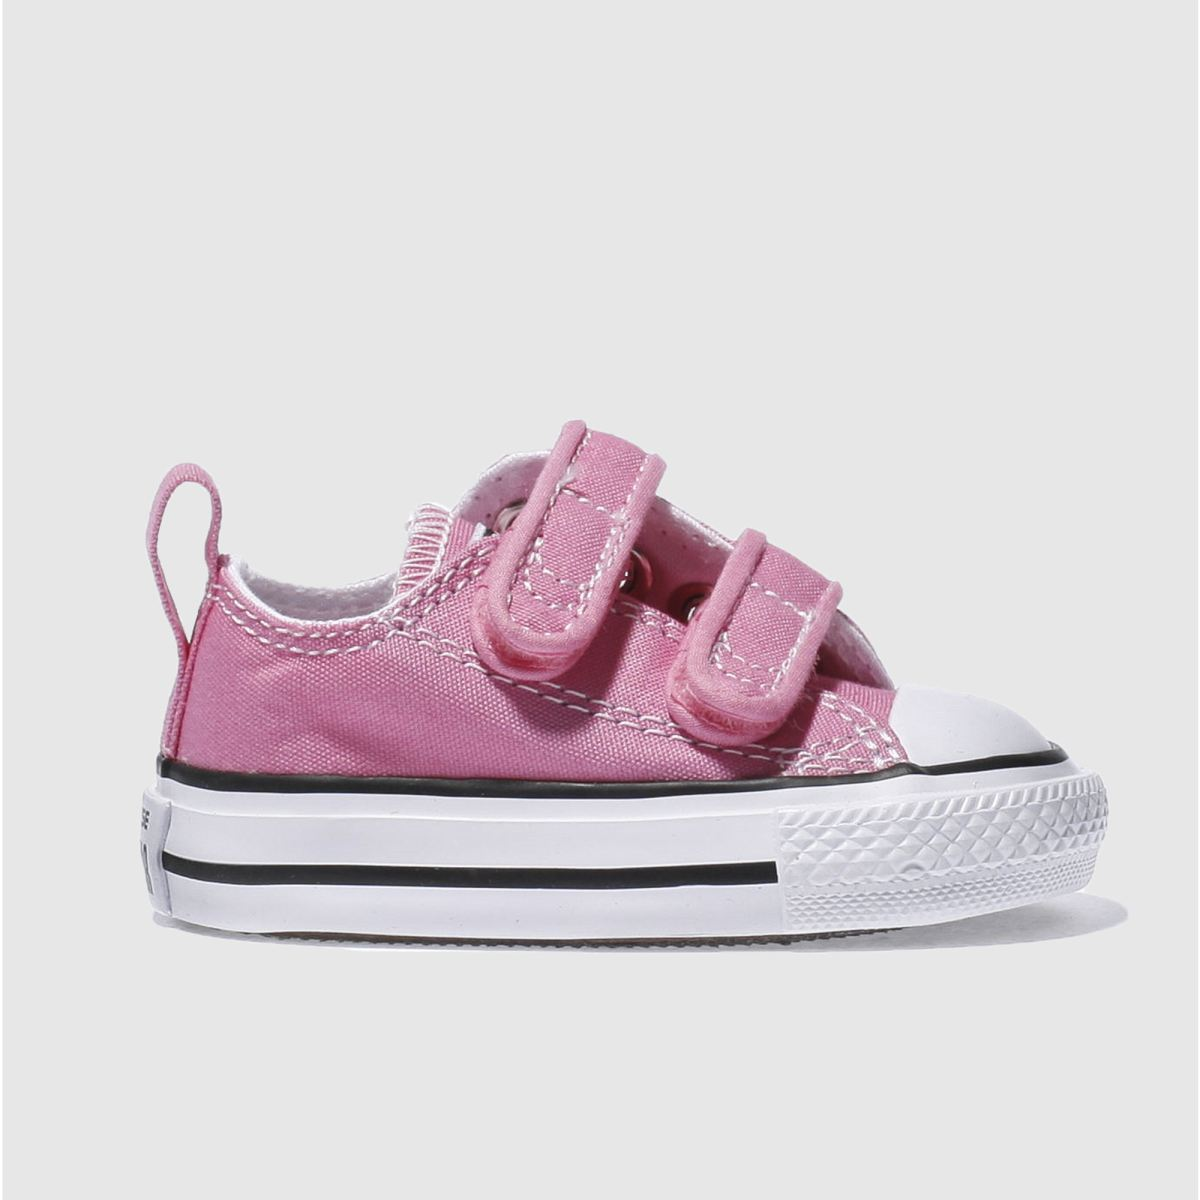 Find great deals on eBay for kids girls trainers. Shop with confidence.